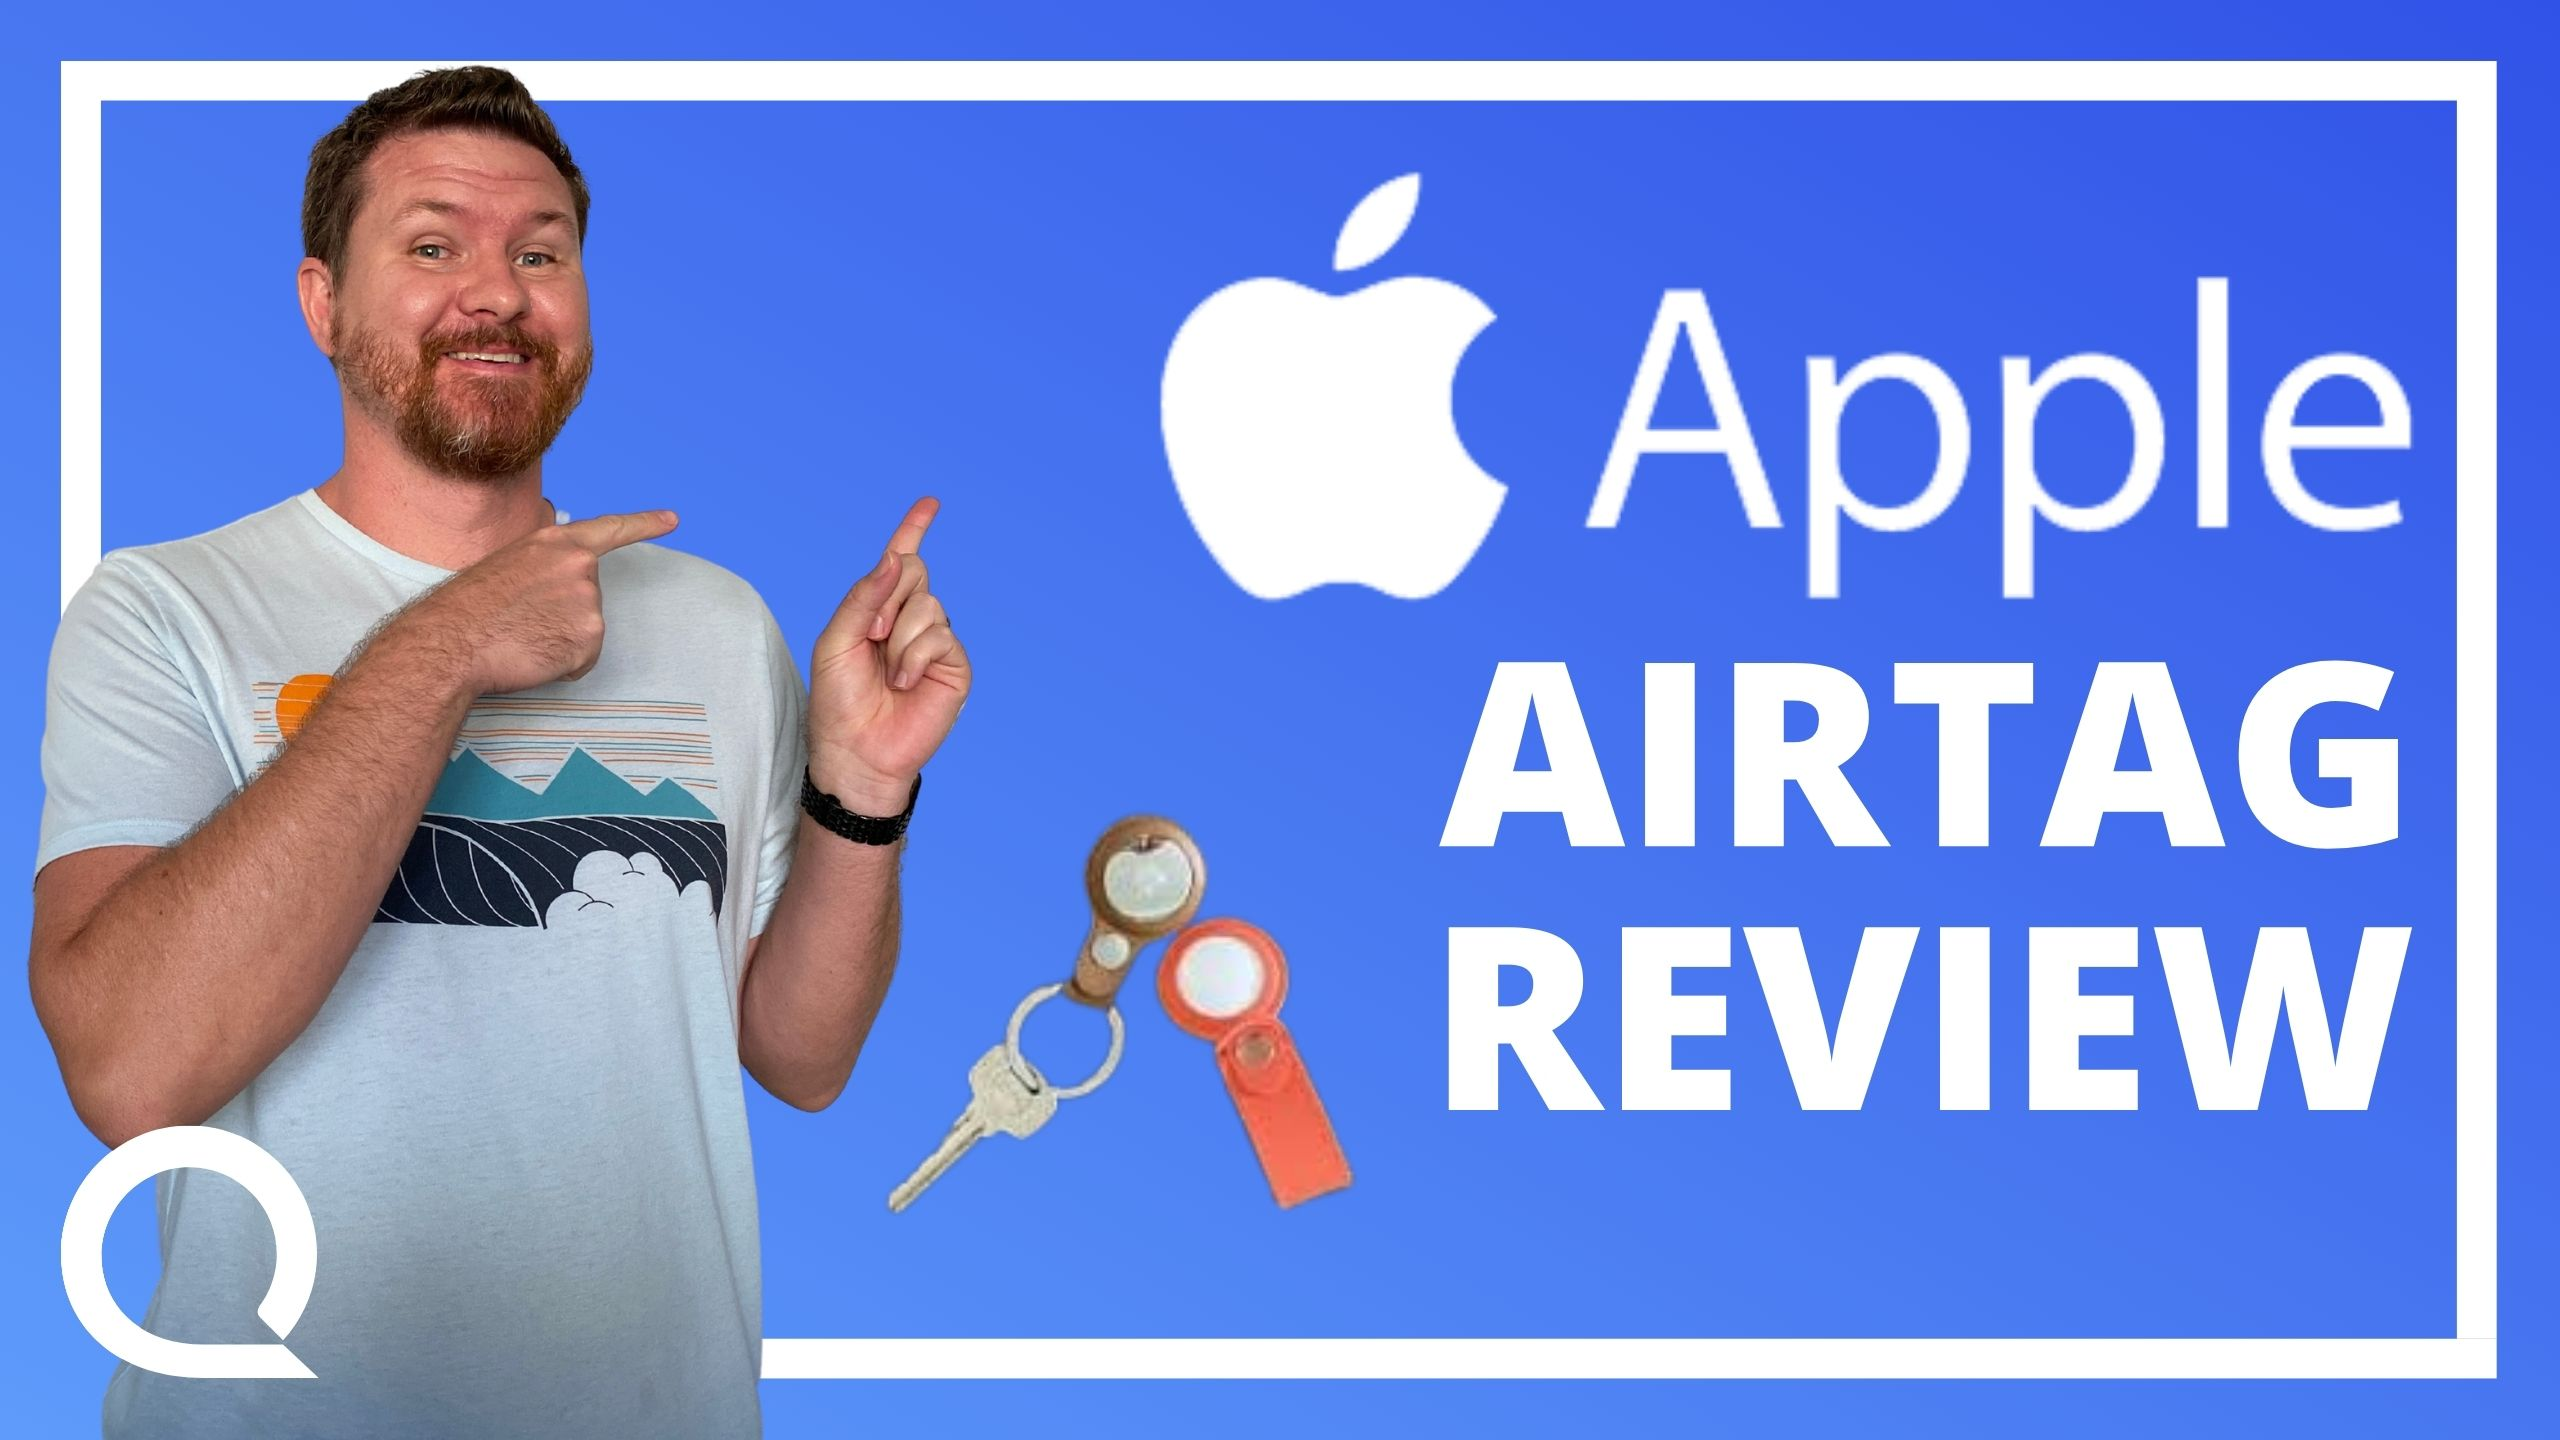 """A man pointing at Apple logo and text """"Apple Airtag Review"""" next to a key on a keychain."""